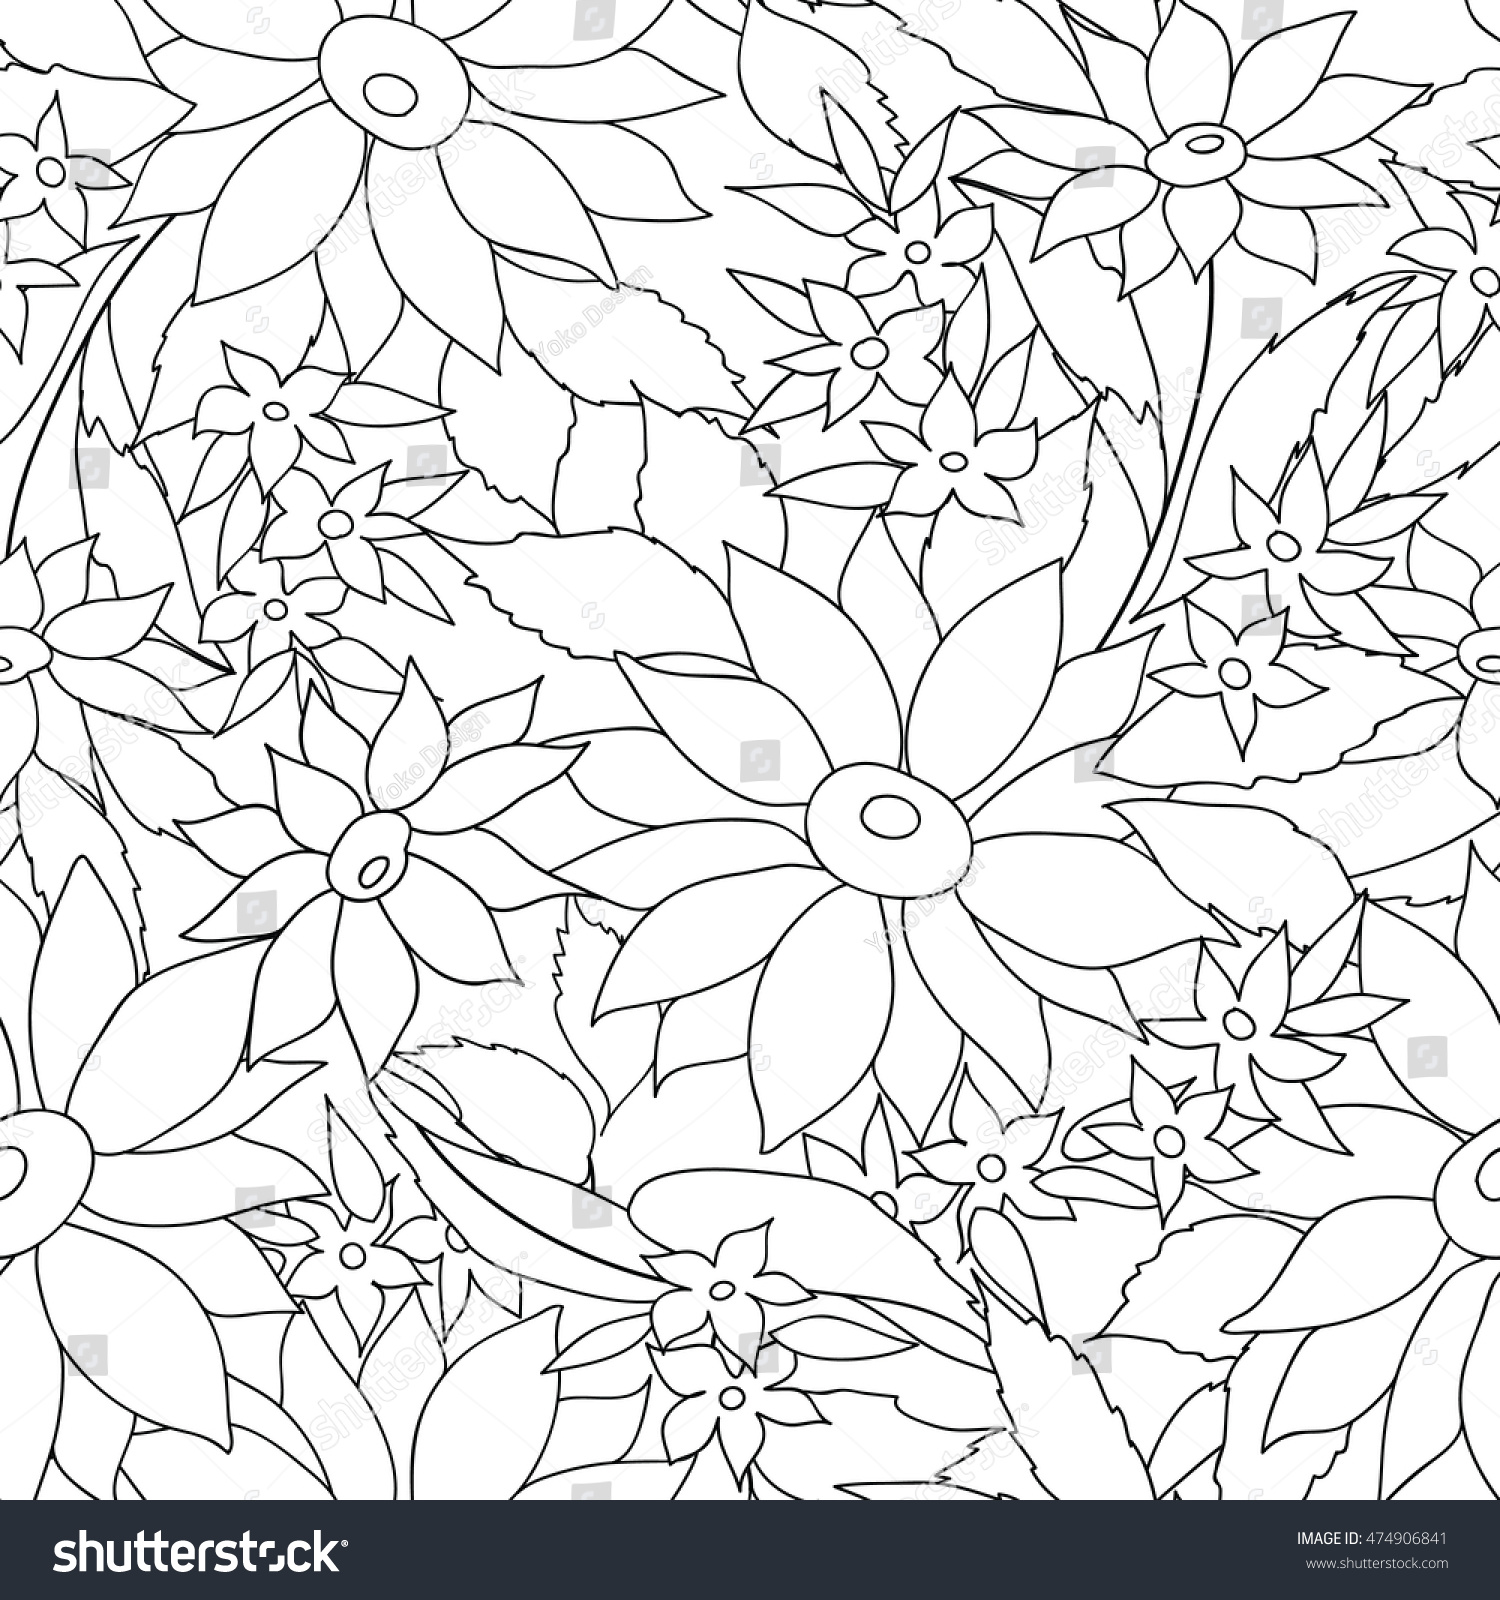 Floral Seamless Outline Pattern Flower Engraving Background Ornamental Monochrome Texture With Flowers